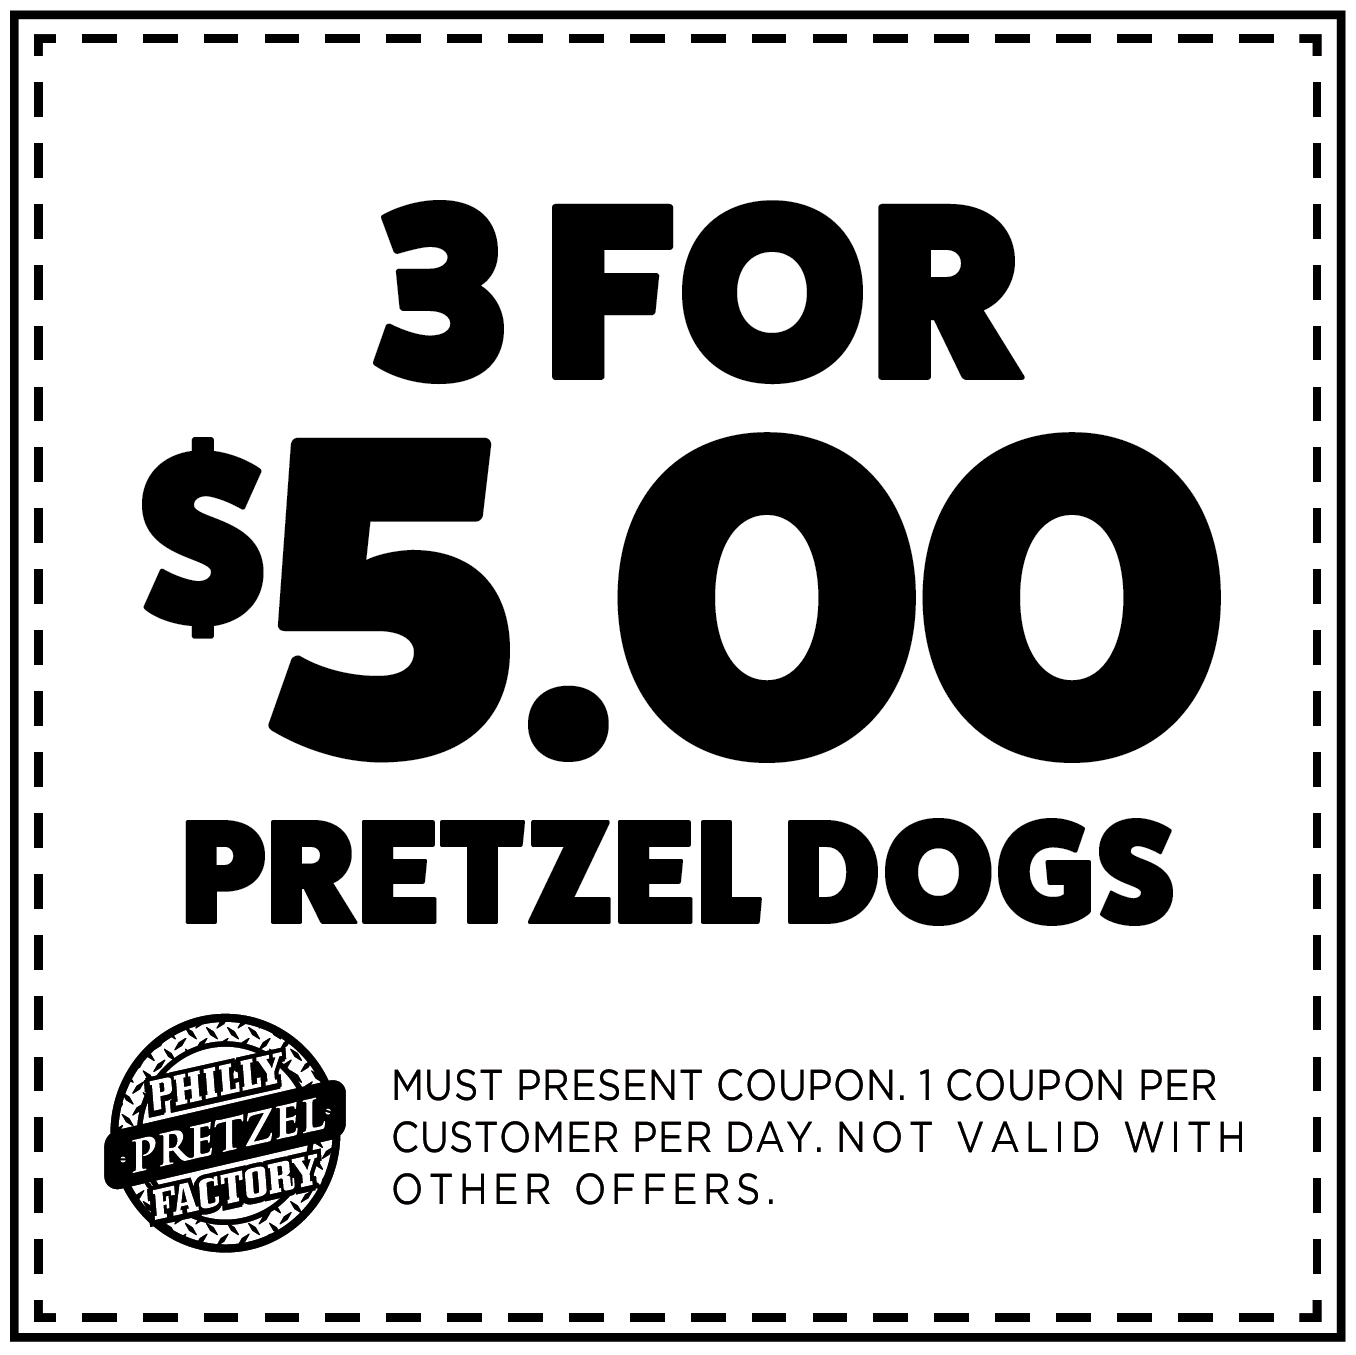 3 for $5 Pretzel Dogs